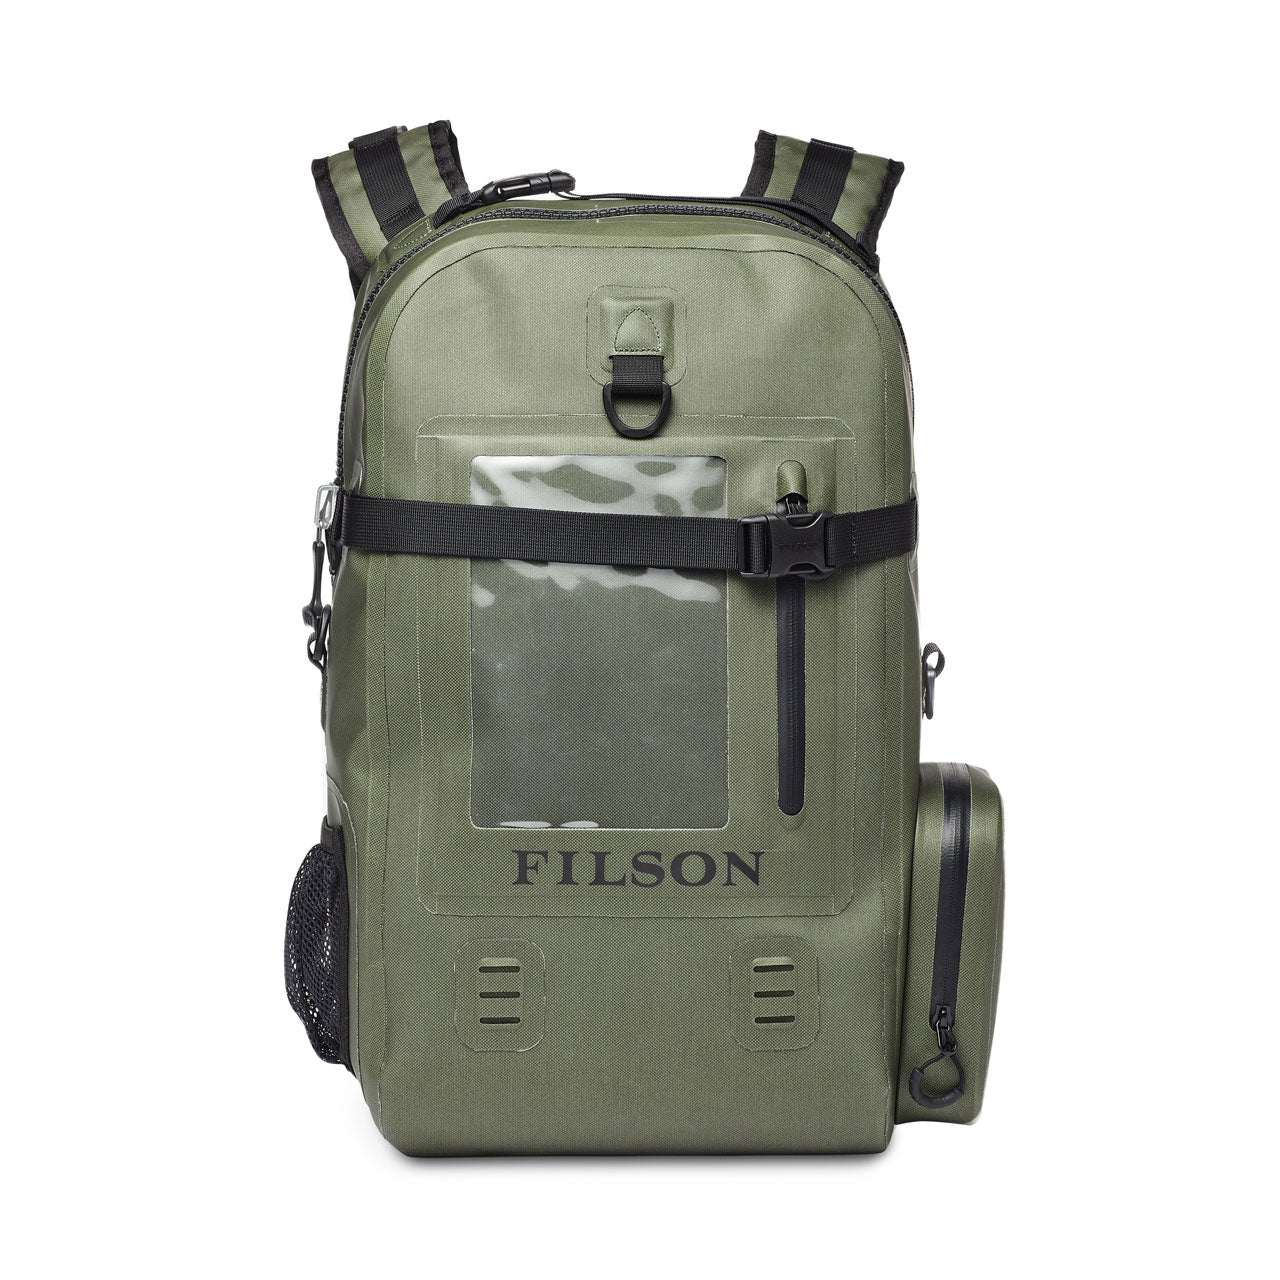 Filson Submersible Backpack